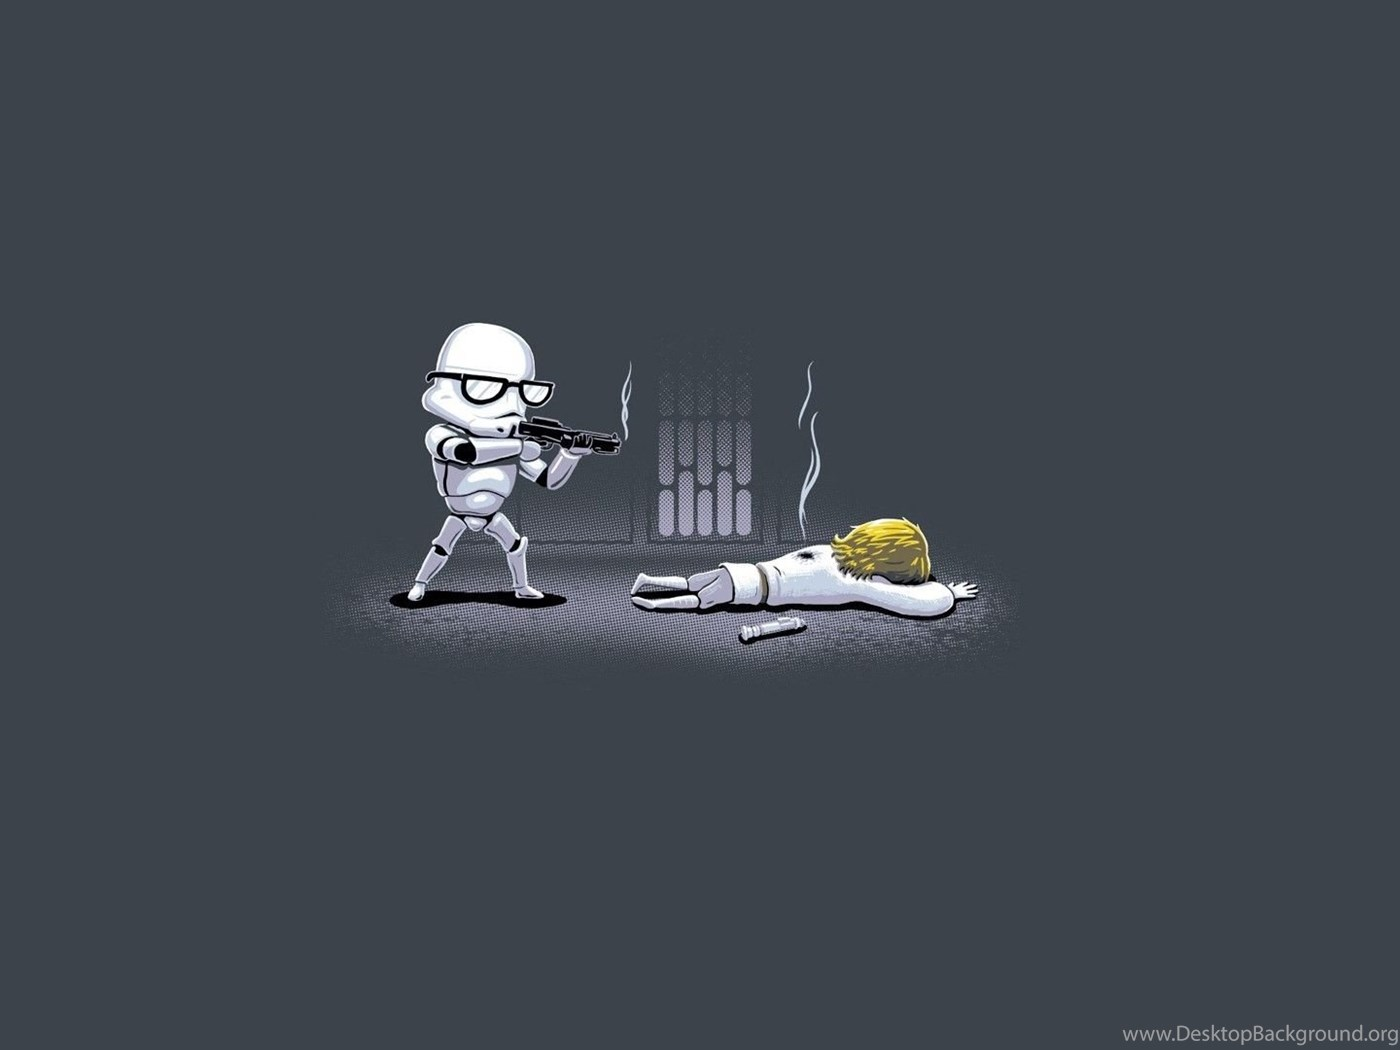 Minimalist Star Wars Fun Comic Wallpapers Desktop Background